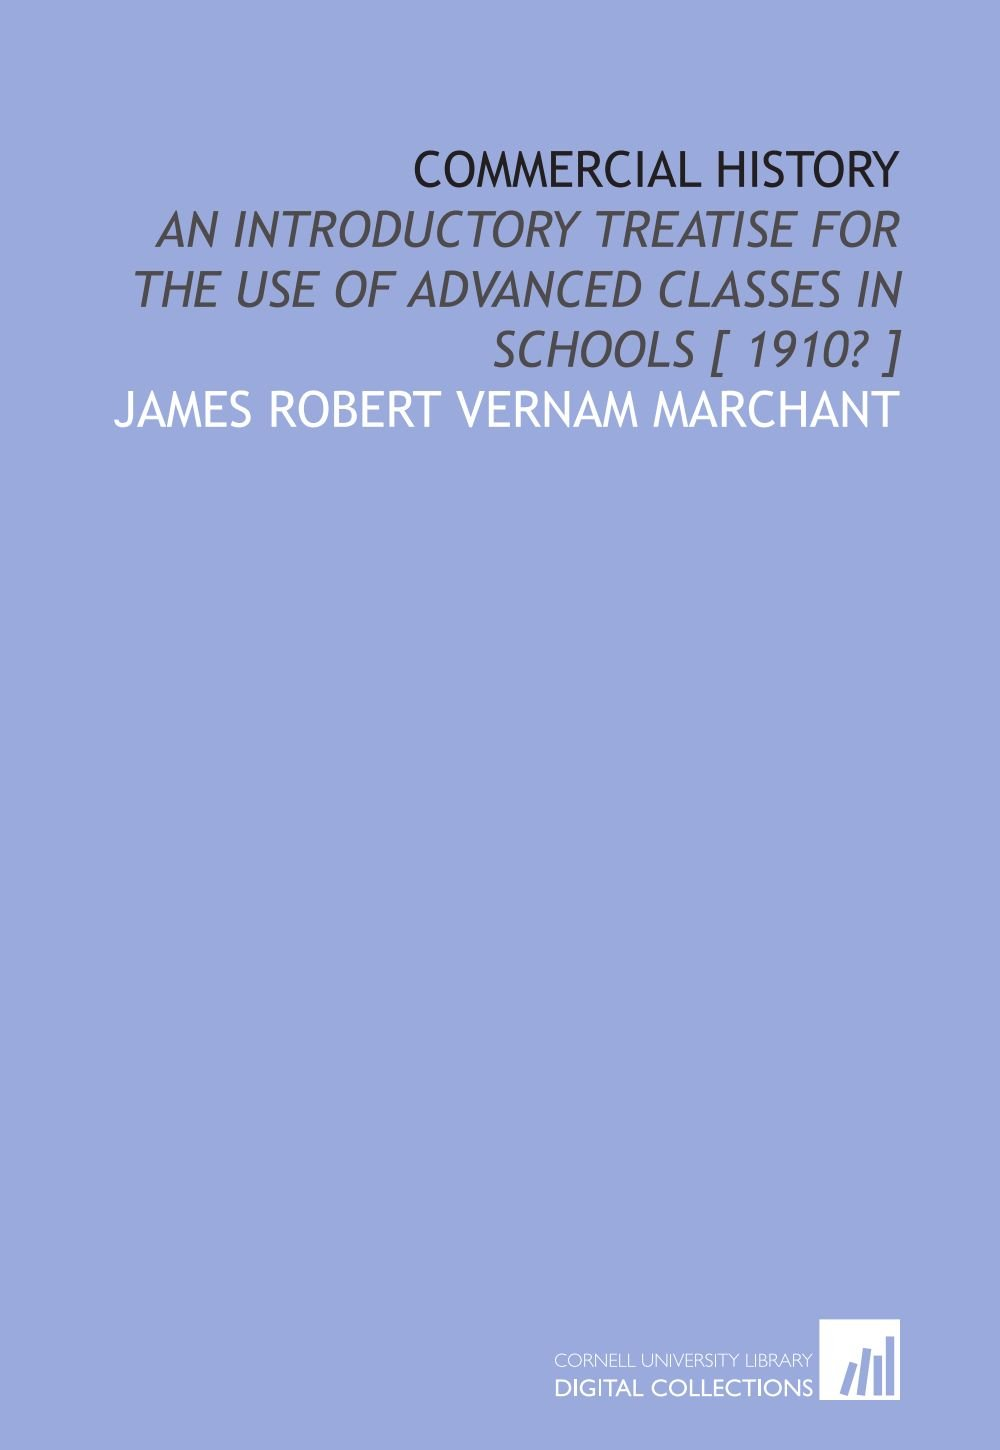 Commercial history: An introductory treatise for the use of advanced classes in schools [ 1910? ] PDF